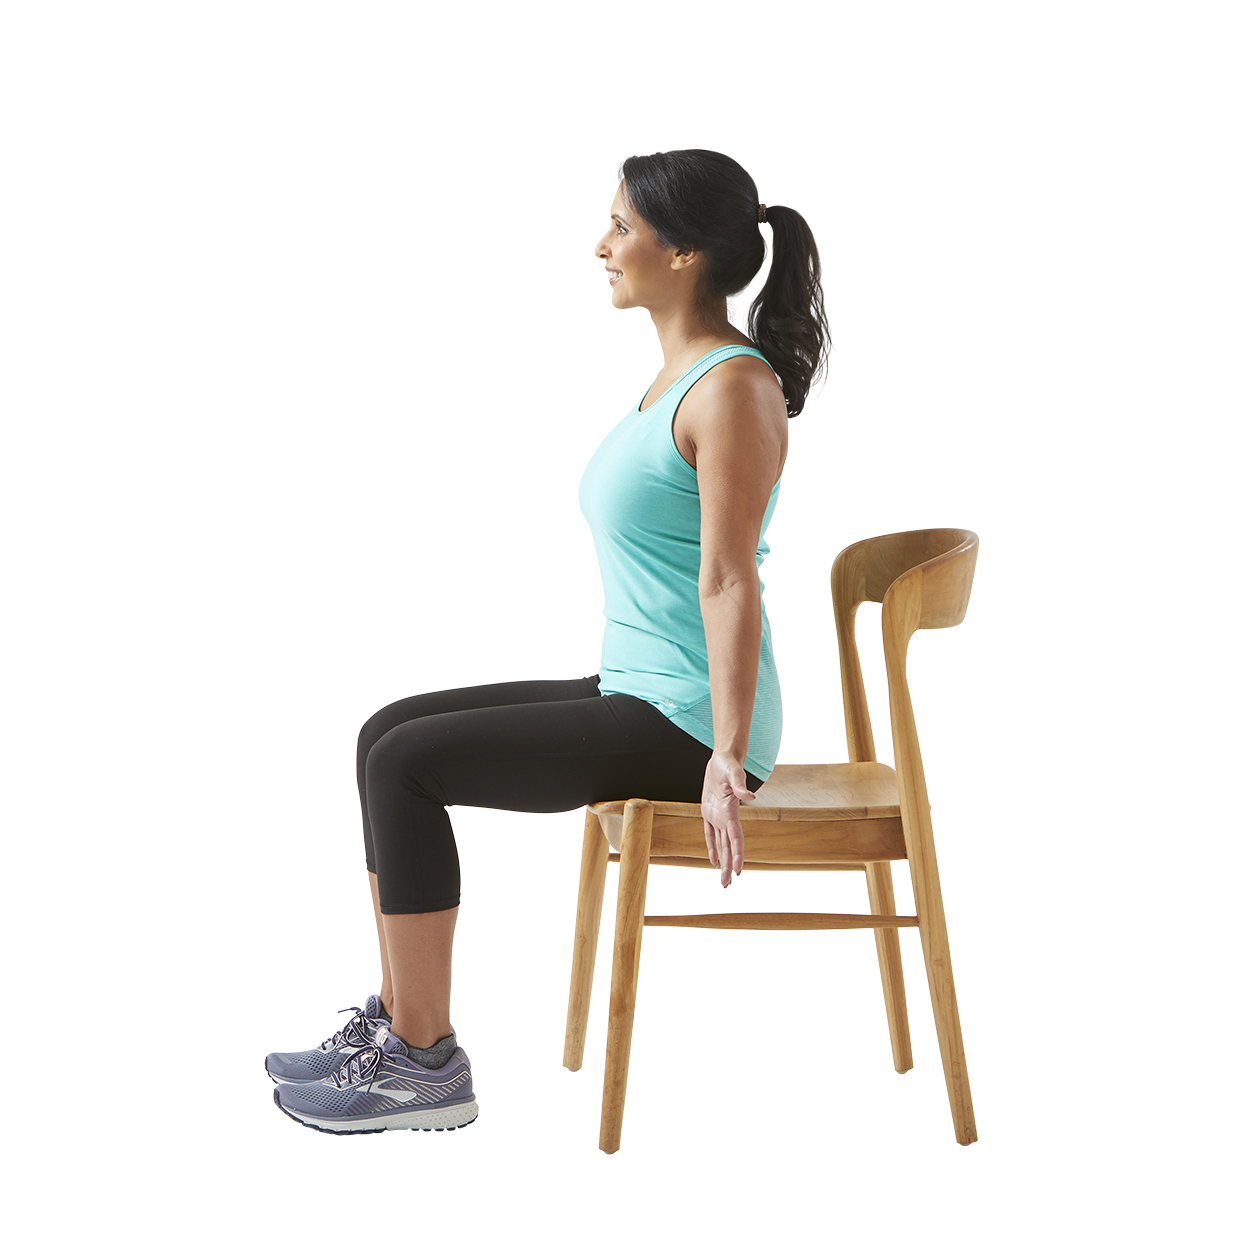 woman stretching in chair